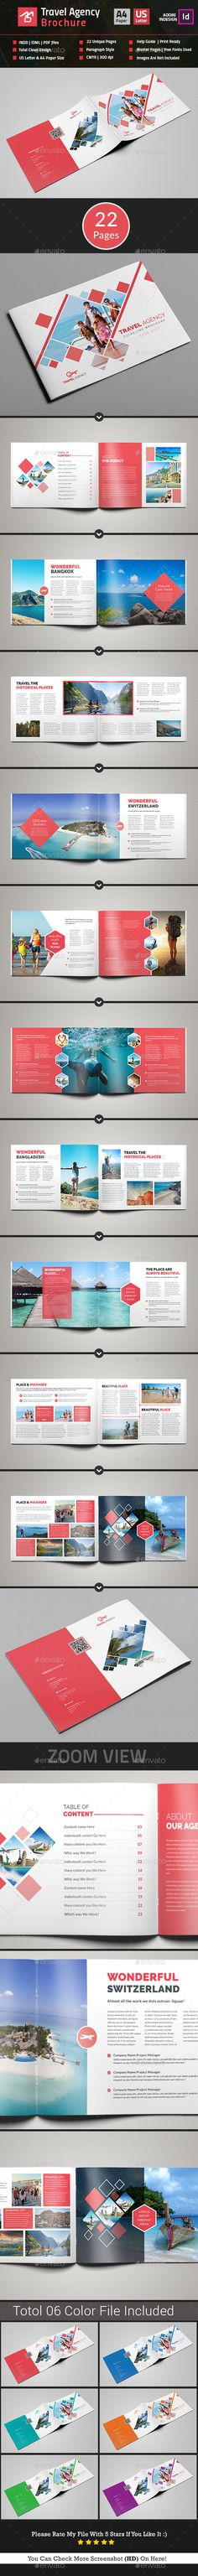 Travel Agency Brochure Catalog Template InDesign INDD. Download here: http://graphicriver.net/item/travel-agency-brochure-catalog/16888657?ref=ksioks